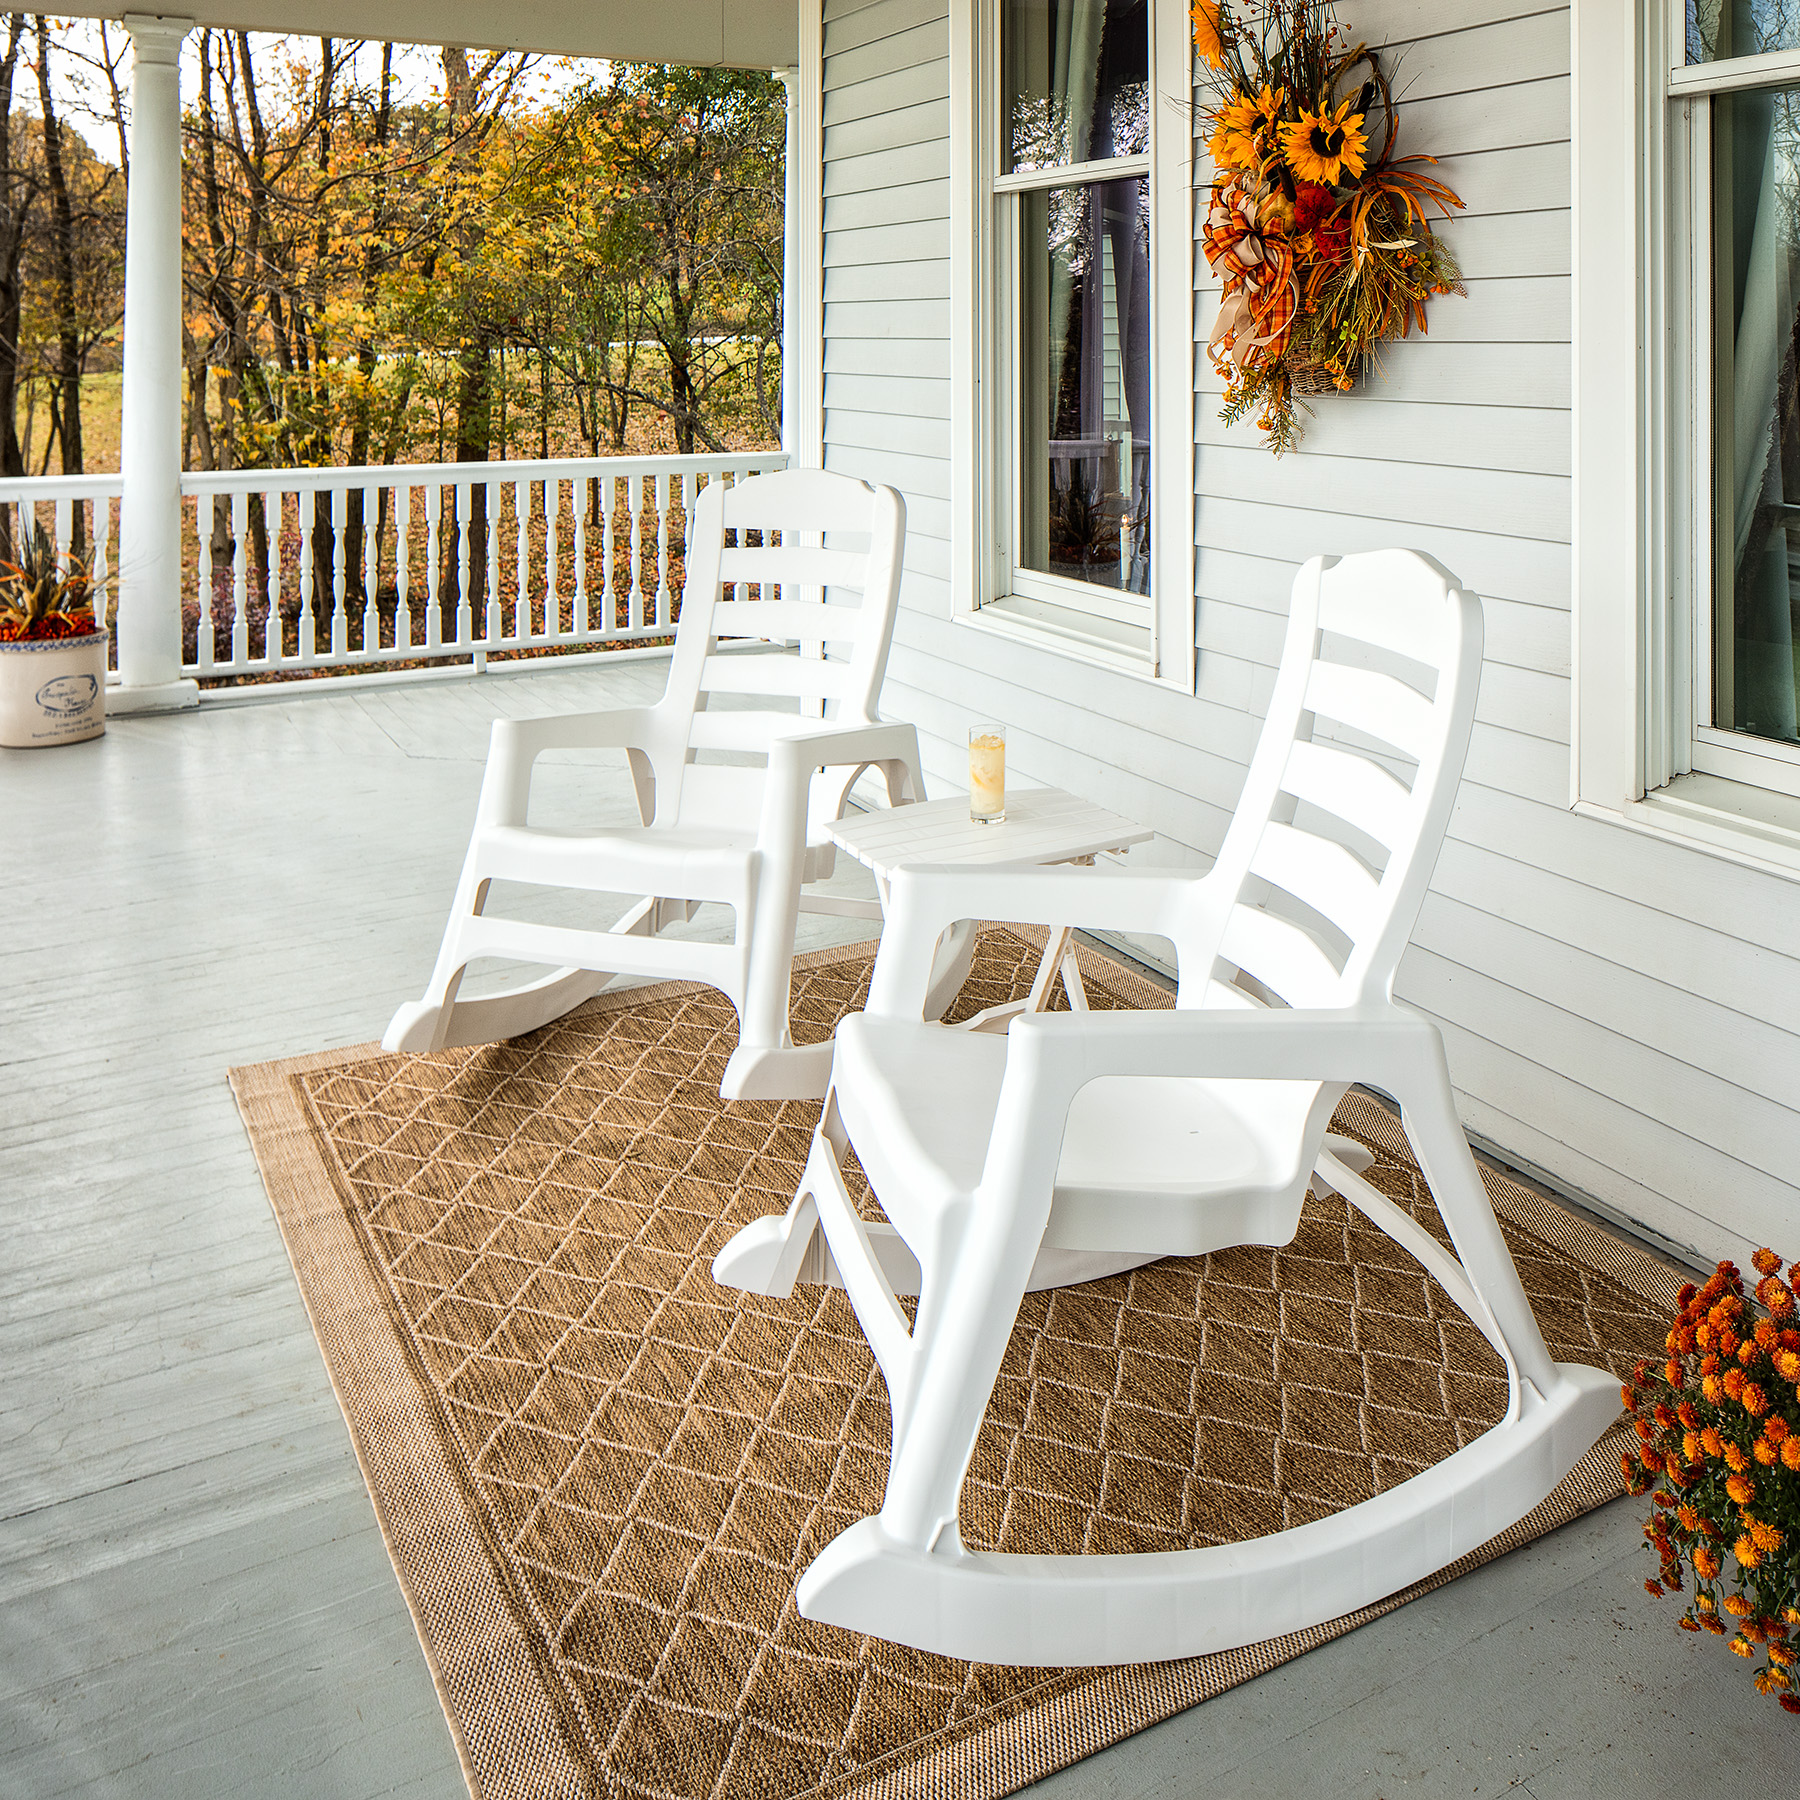 Stupendous Adams Manufacturing Big Easy Rocking Chair White Caraccident5 Cool Chair Designs And Ideas Caraccident5Info